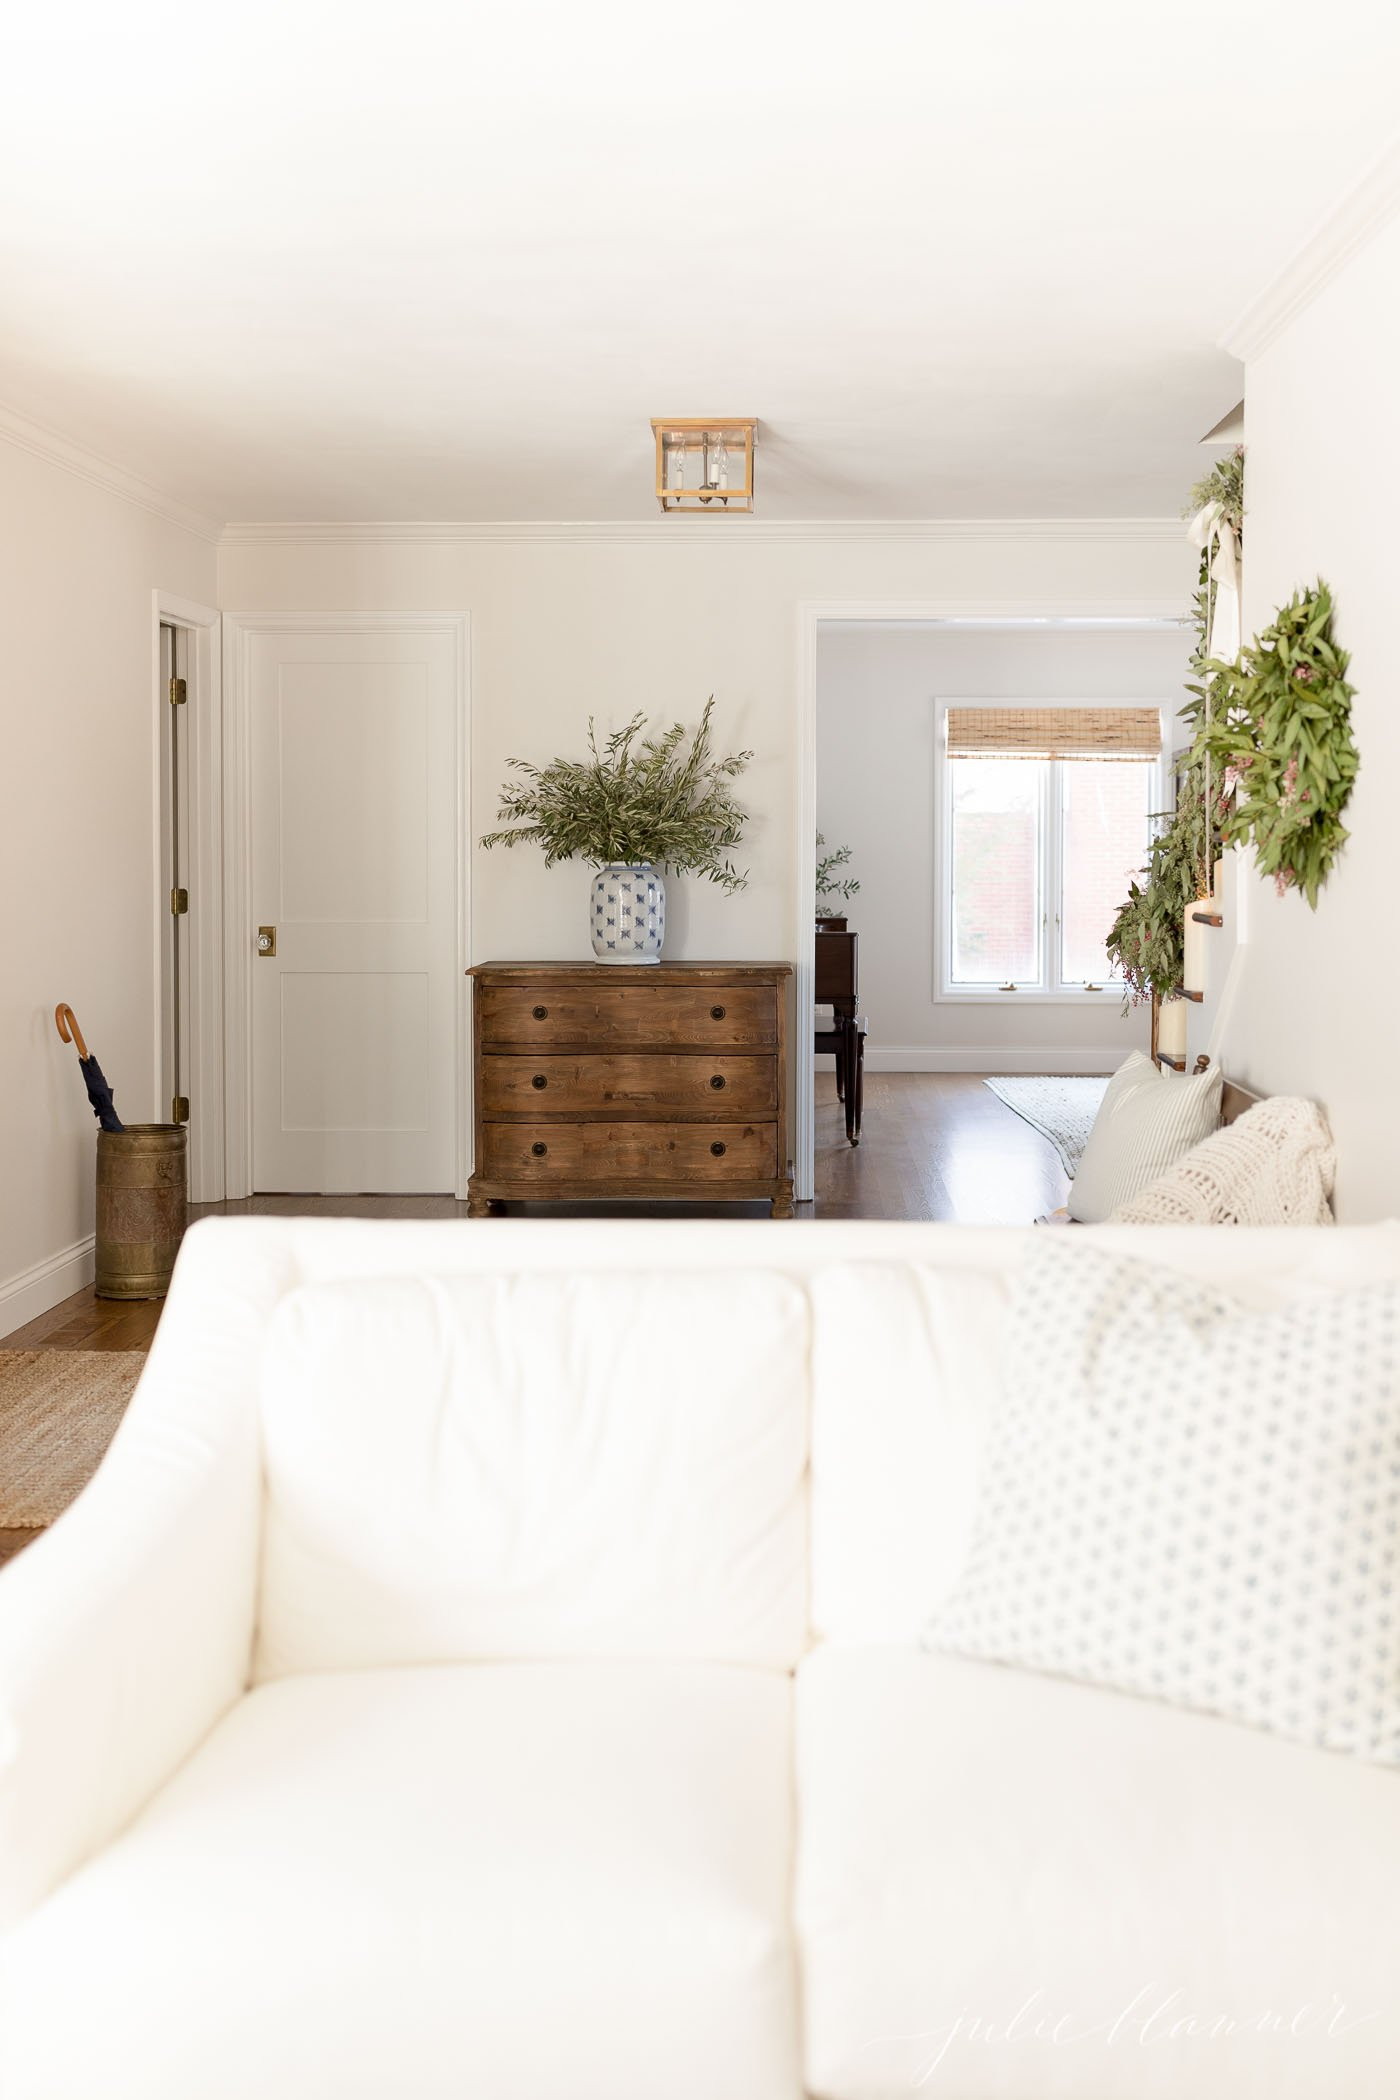 A white living room decorated with holiday greenery and discreet storage containers.